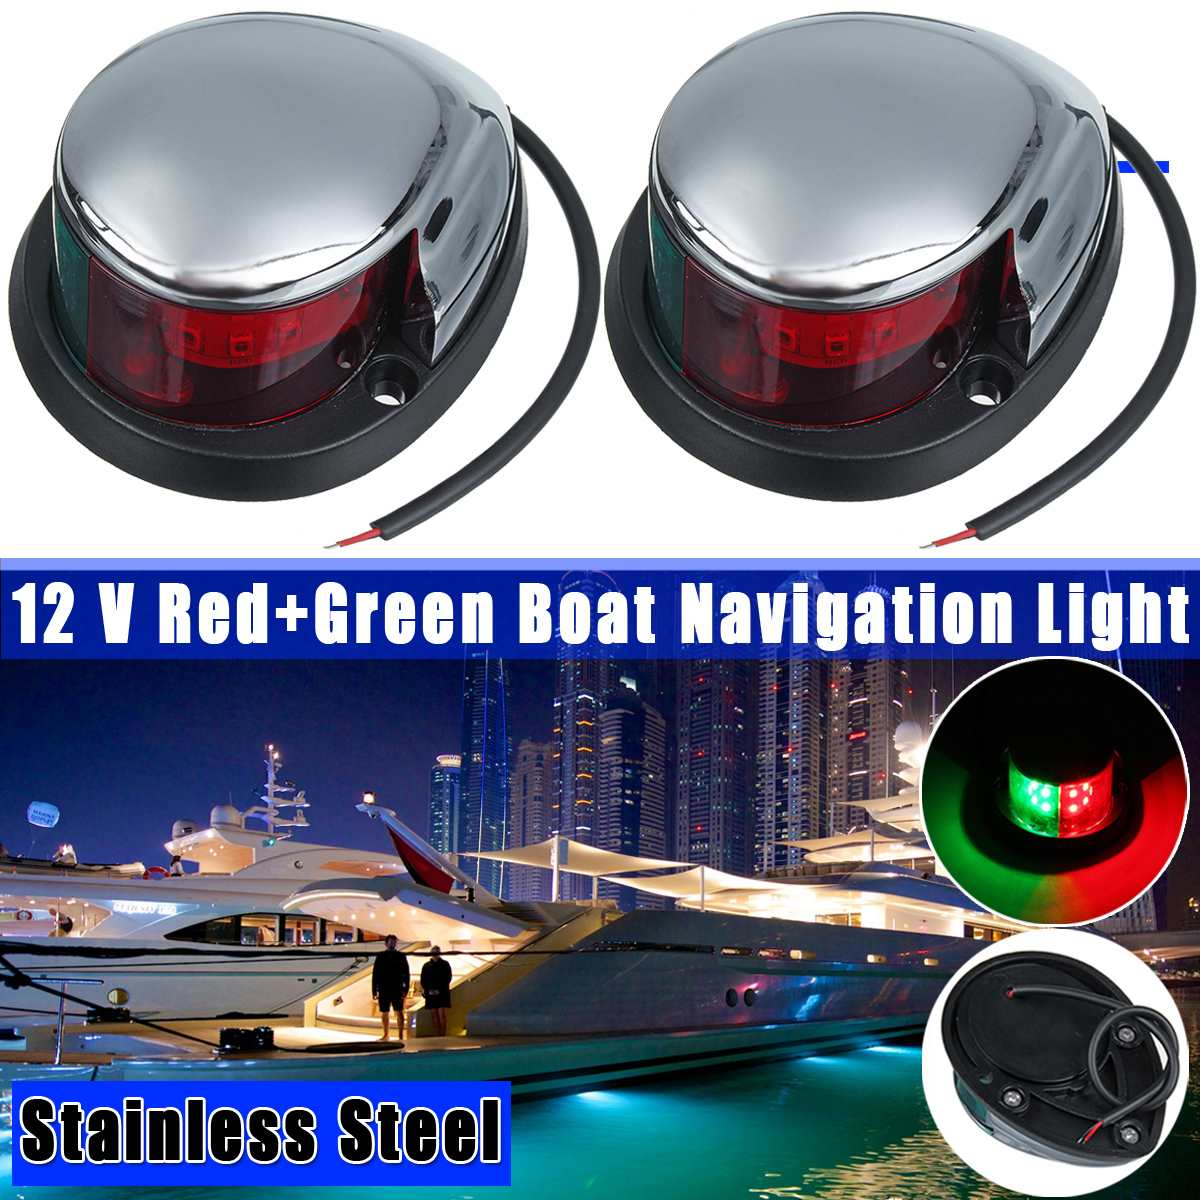 1 Pair Stainless Steel+ABS Red Green Navigation Light Boat Marine Indicator Spot Light Marine Boat Accessory Boat Yacht Sailing